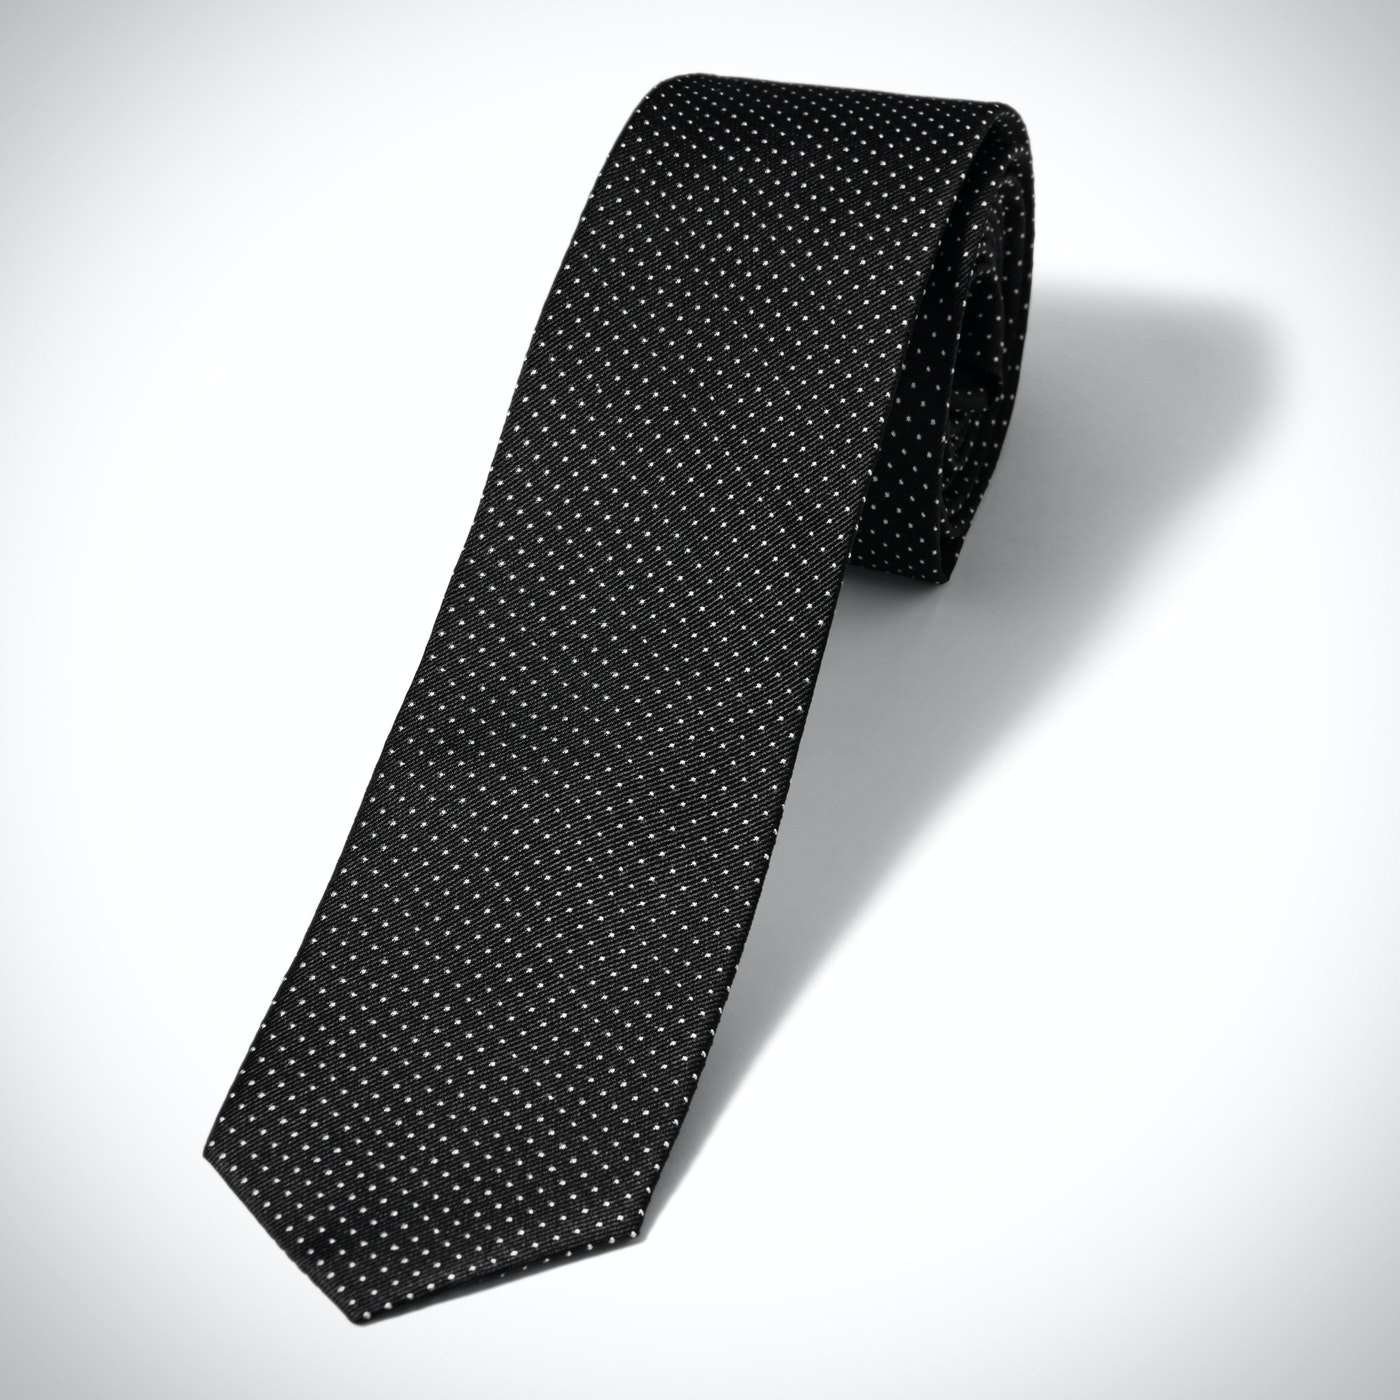 Black and White Pin Dot Tie